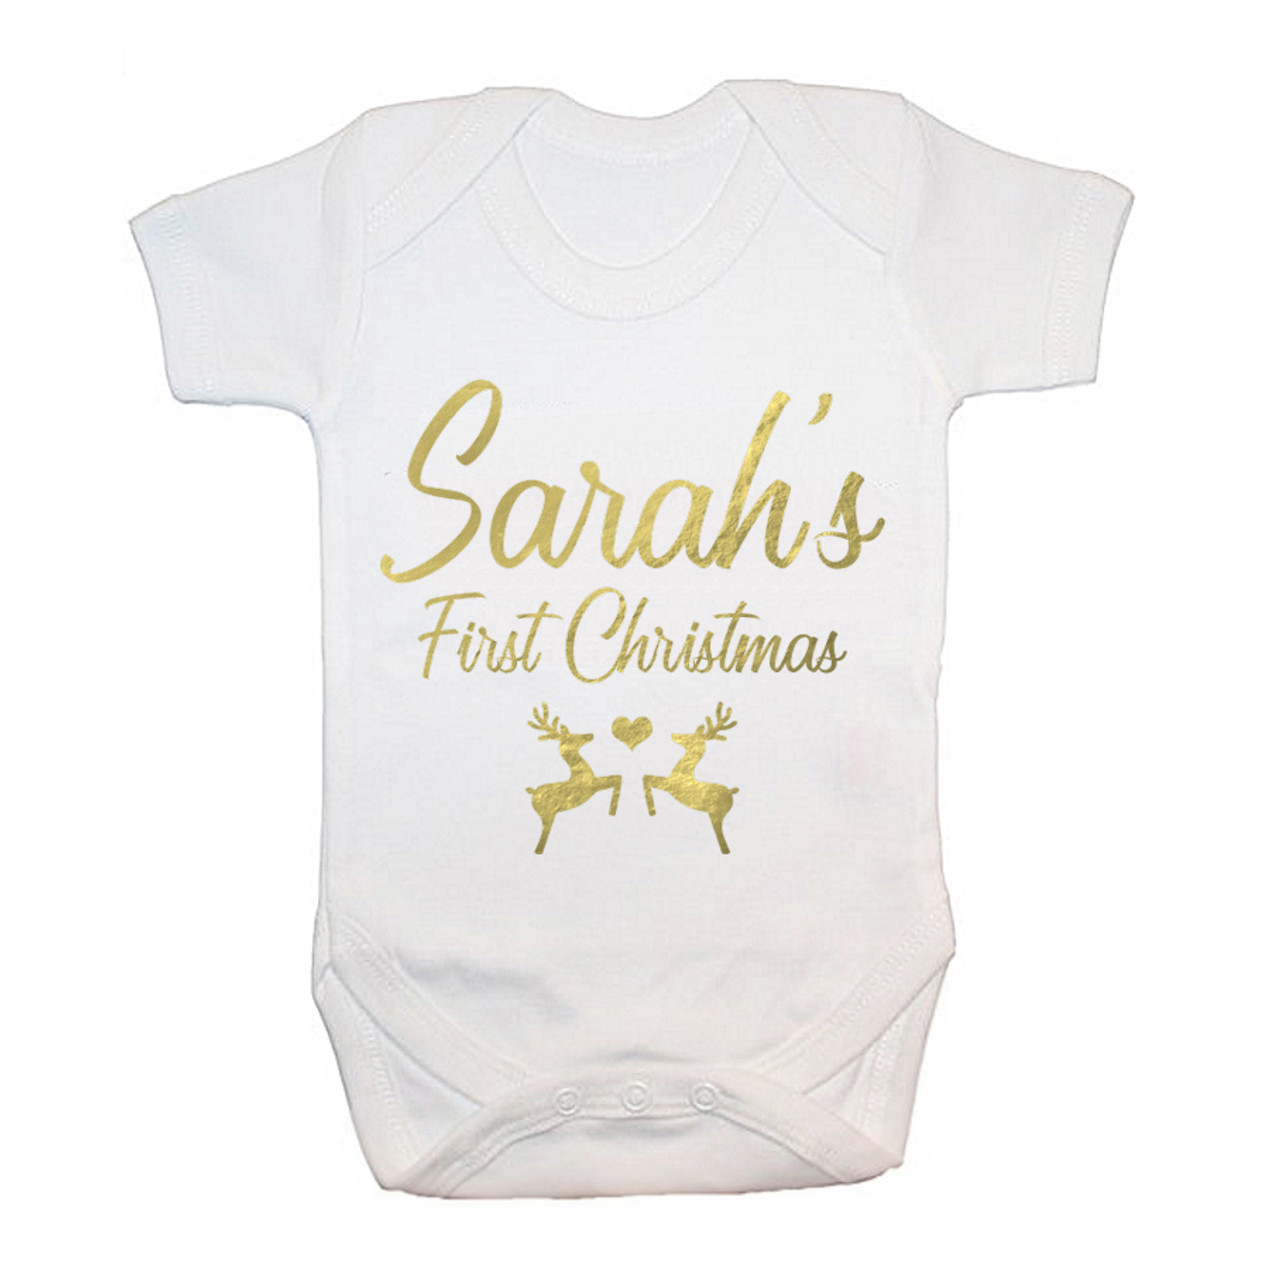 New Baby Christmas Gift Personalised First Christmas Baby Grow